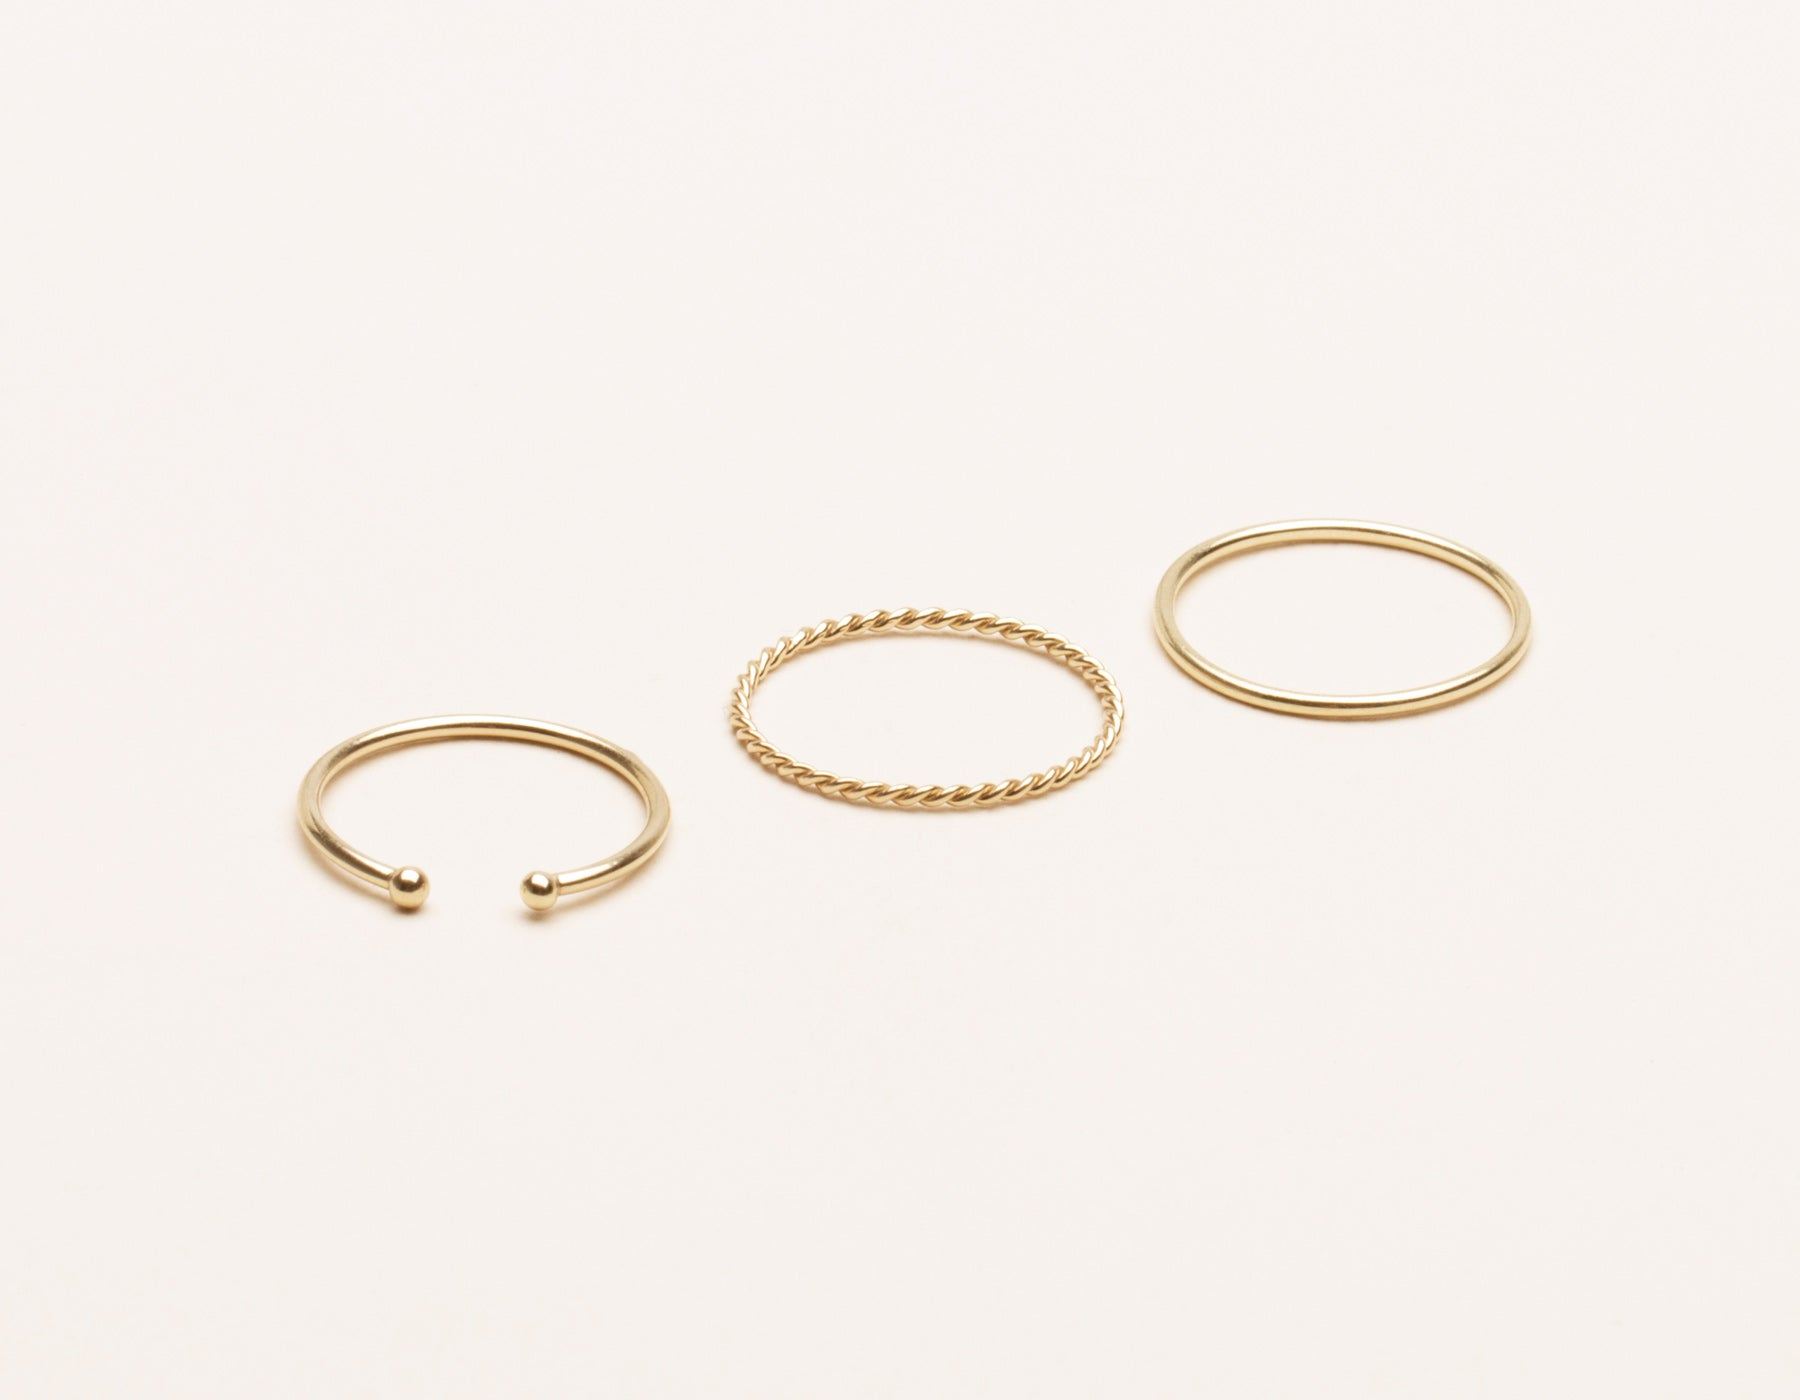 vrai and Oro delicate 14k solid gold classic simple stack skinny stacker twist ring dot cuff, 14K Yellow Gold